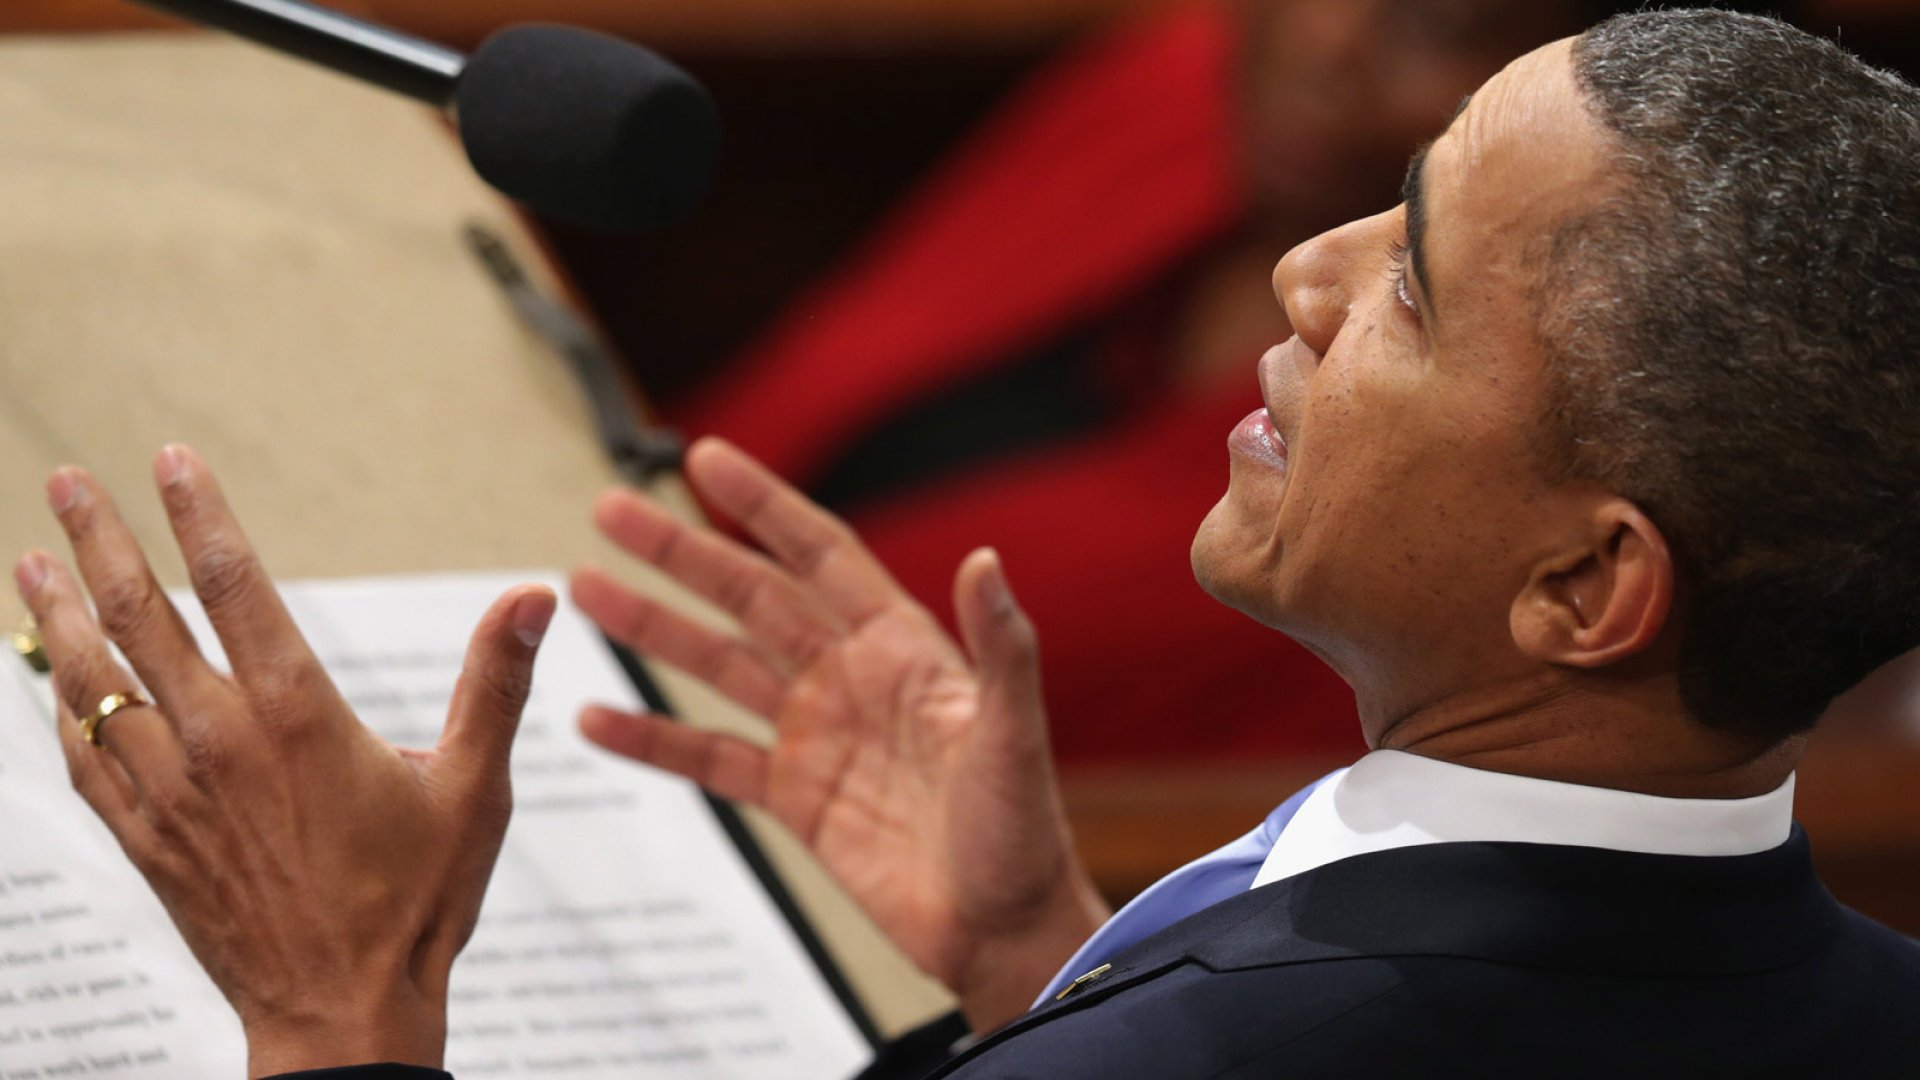 U.S. President Barack Obama delivers the State of the Union address to a joint session of Congress in the House Chamber at the U.S. Capitol on January 28, 2014 in Washington, DC.